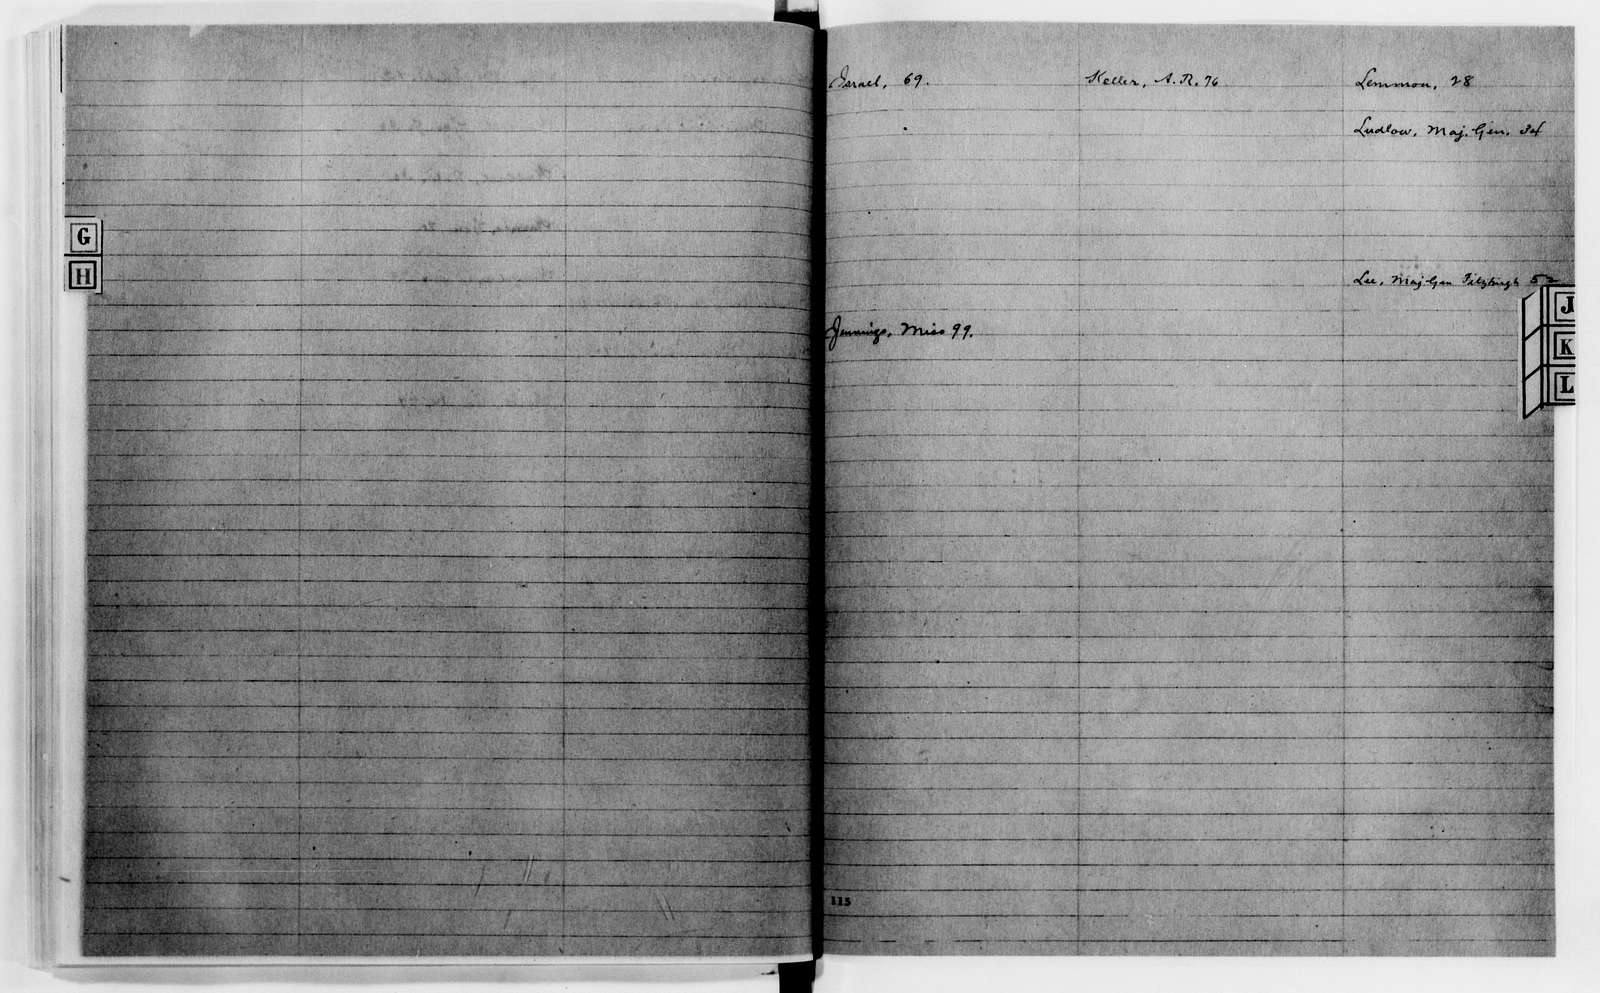 Clara Barton Papers: Letterbooks, 1876-1911; 1899, May-July